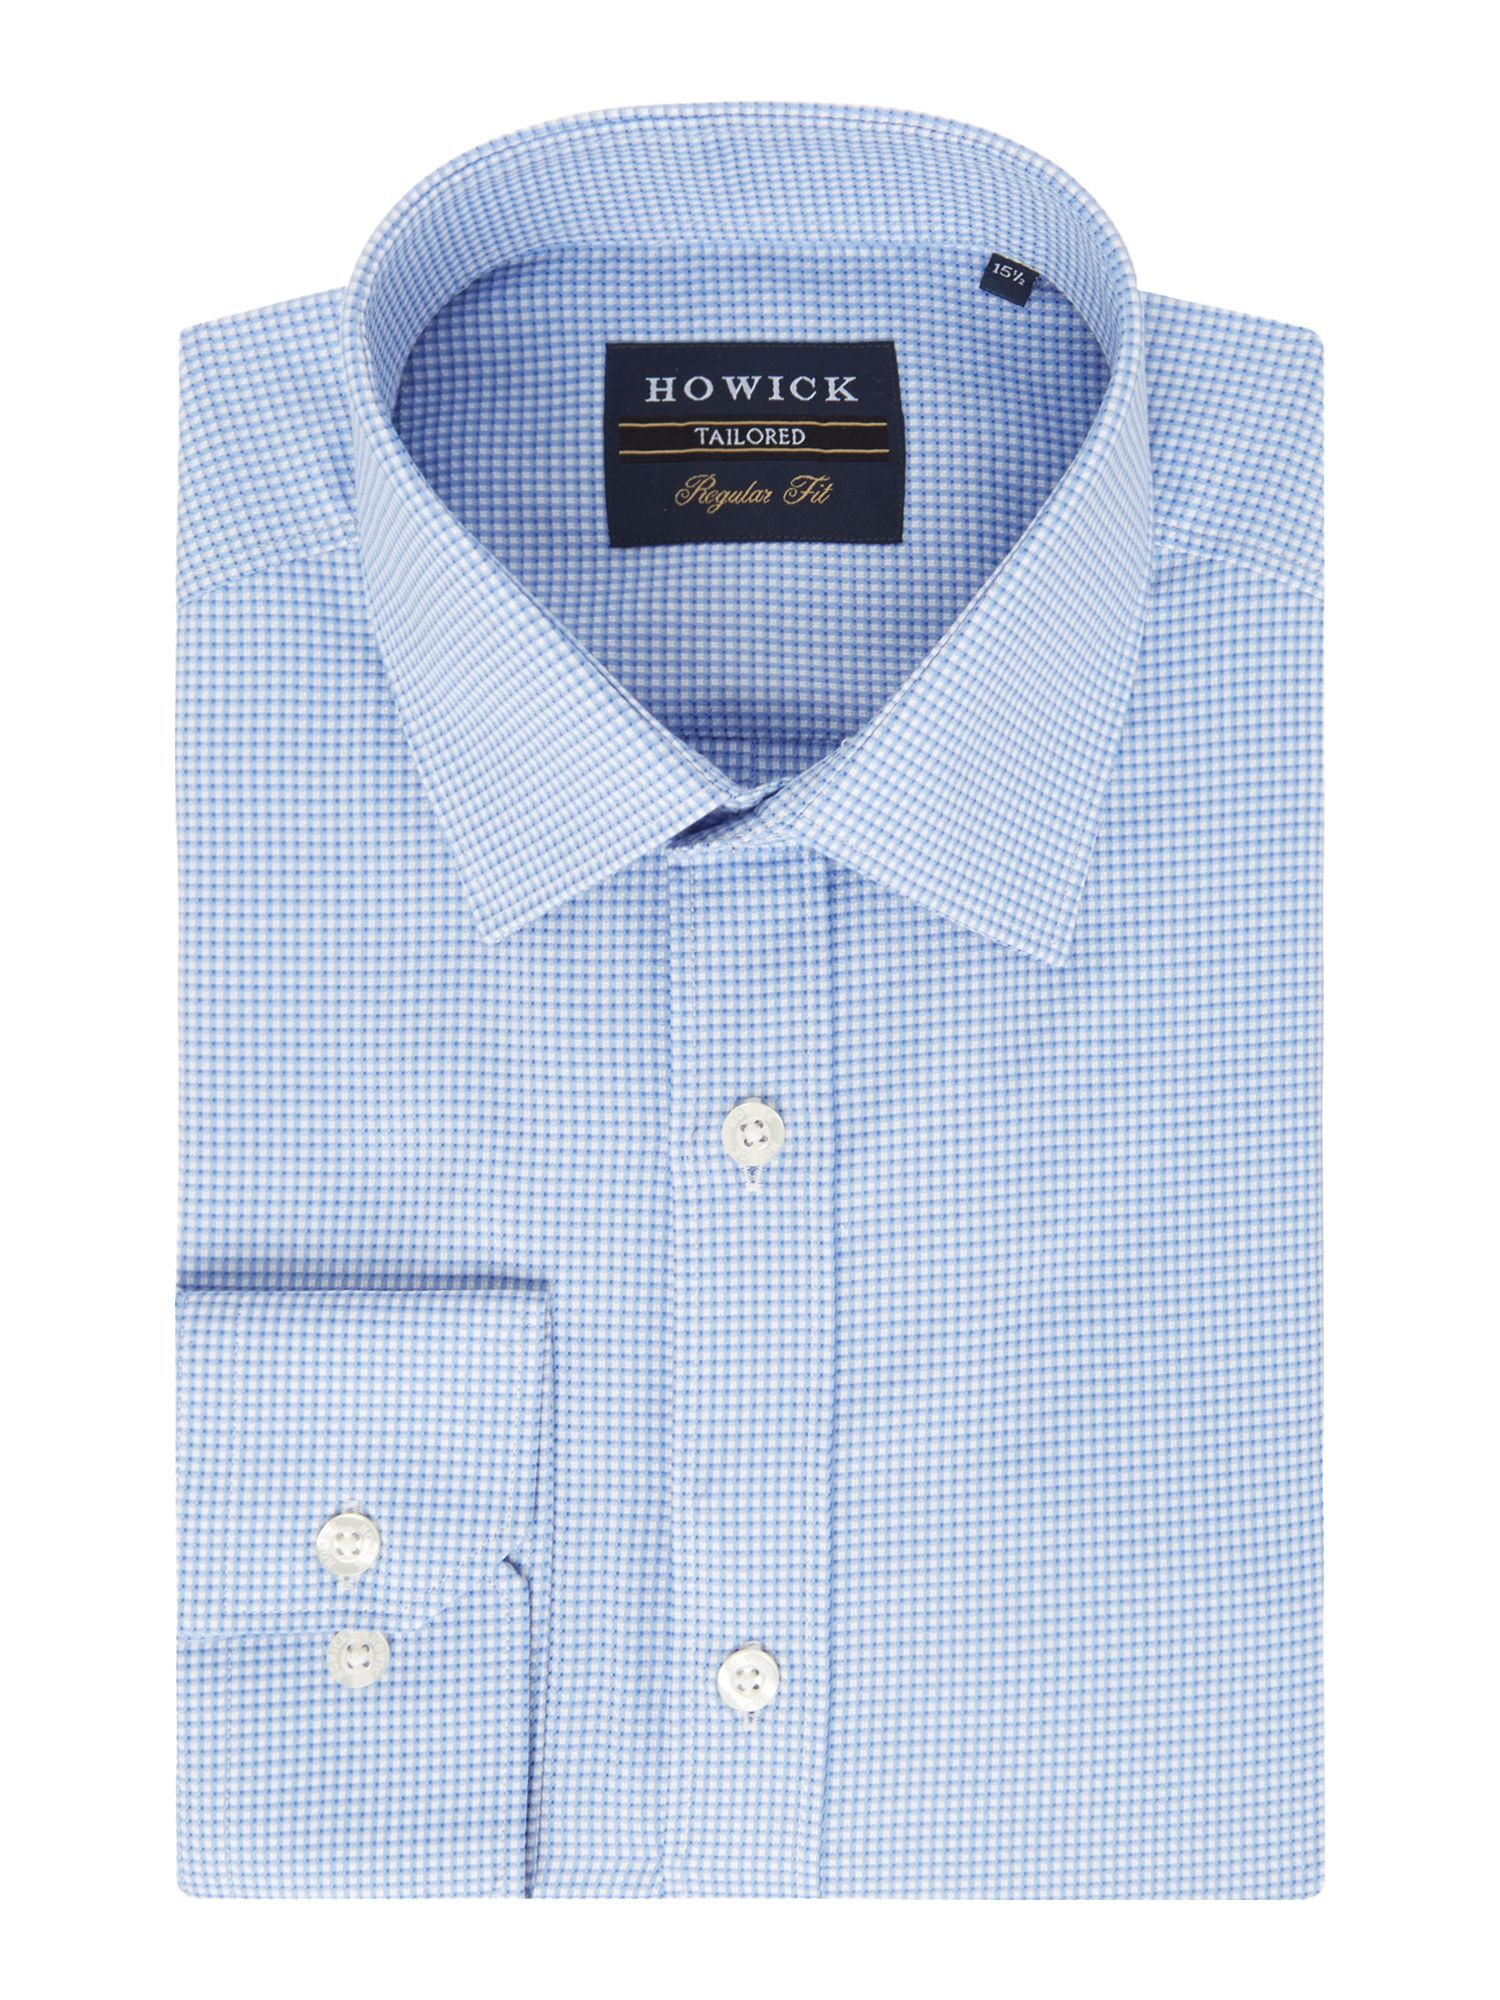 Howick Tailored Men's Howick Tailored Parkway Textured Check Shirt, Blue